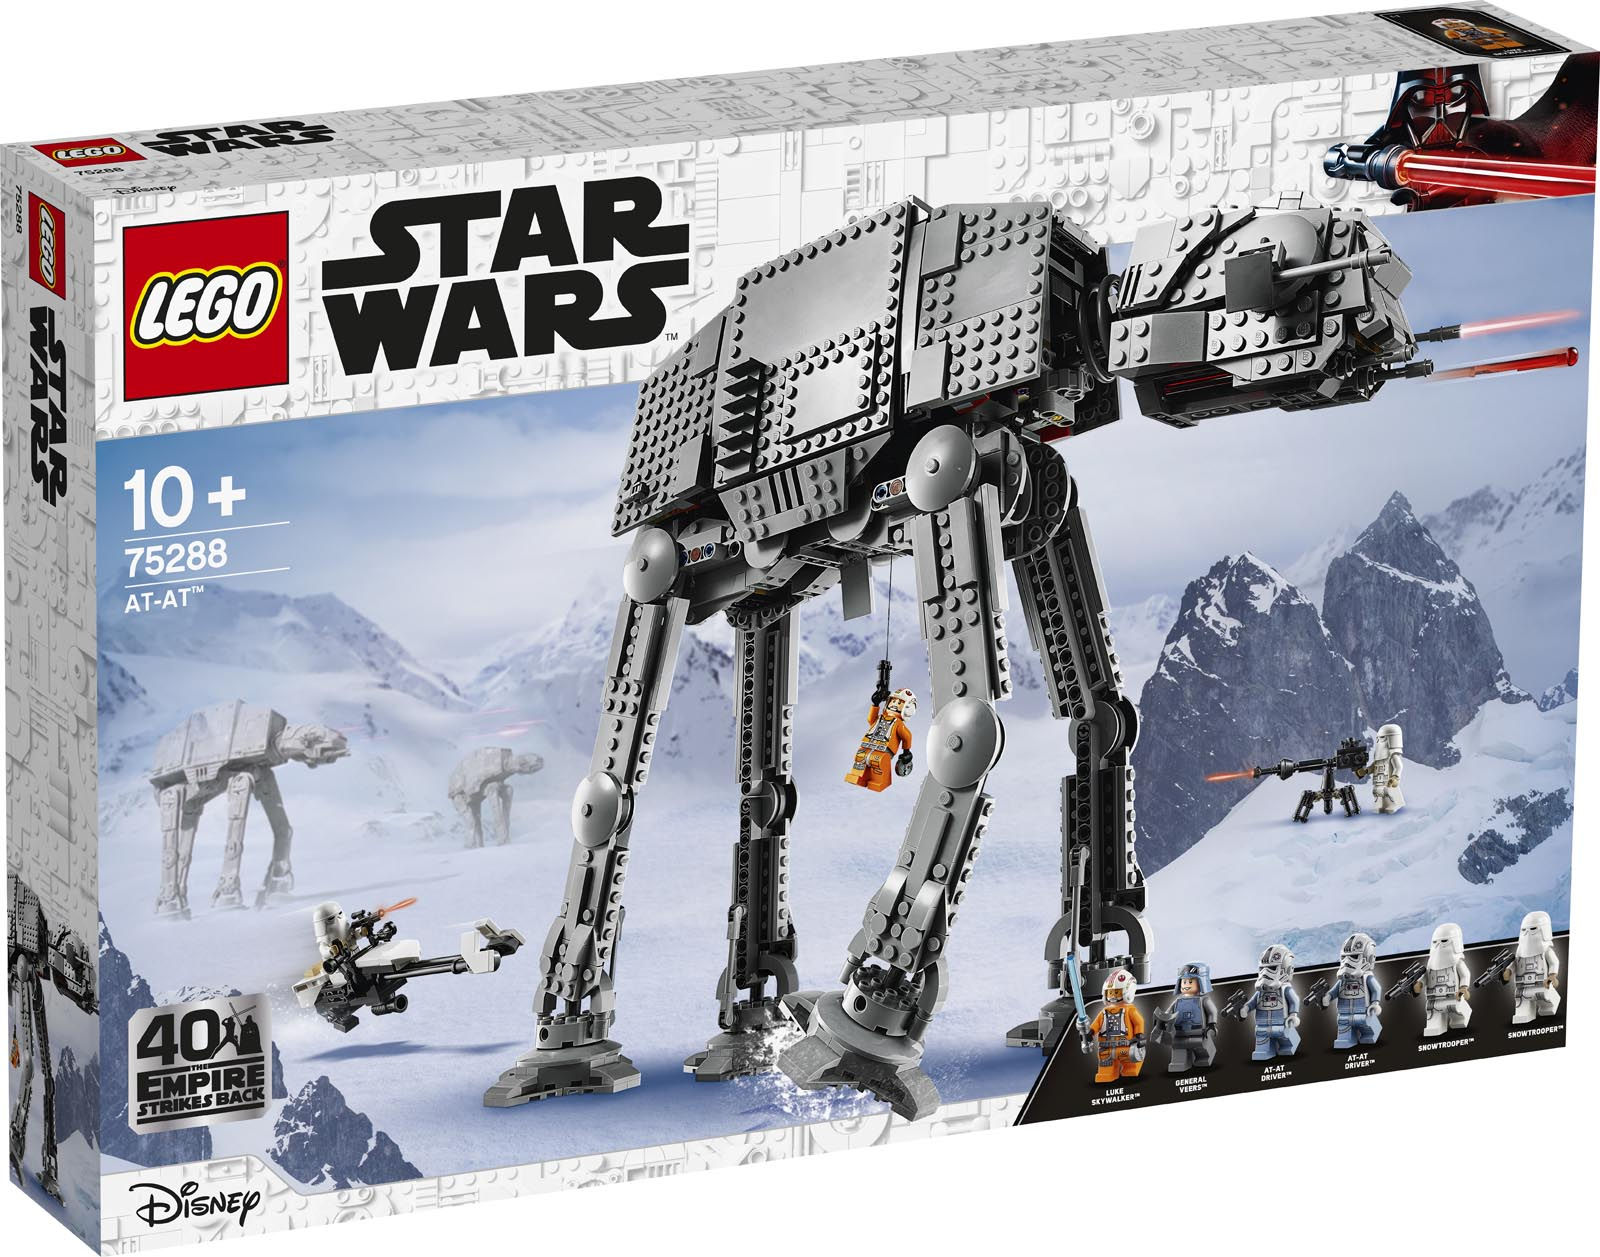 Amazon Accepting Pre-orders for Some September LEGO Star Wars Sets